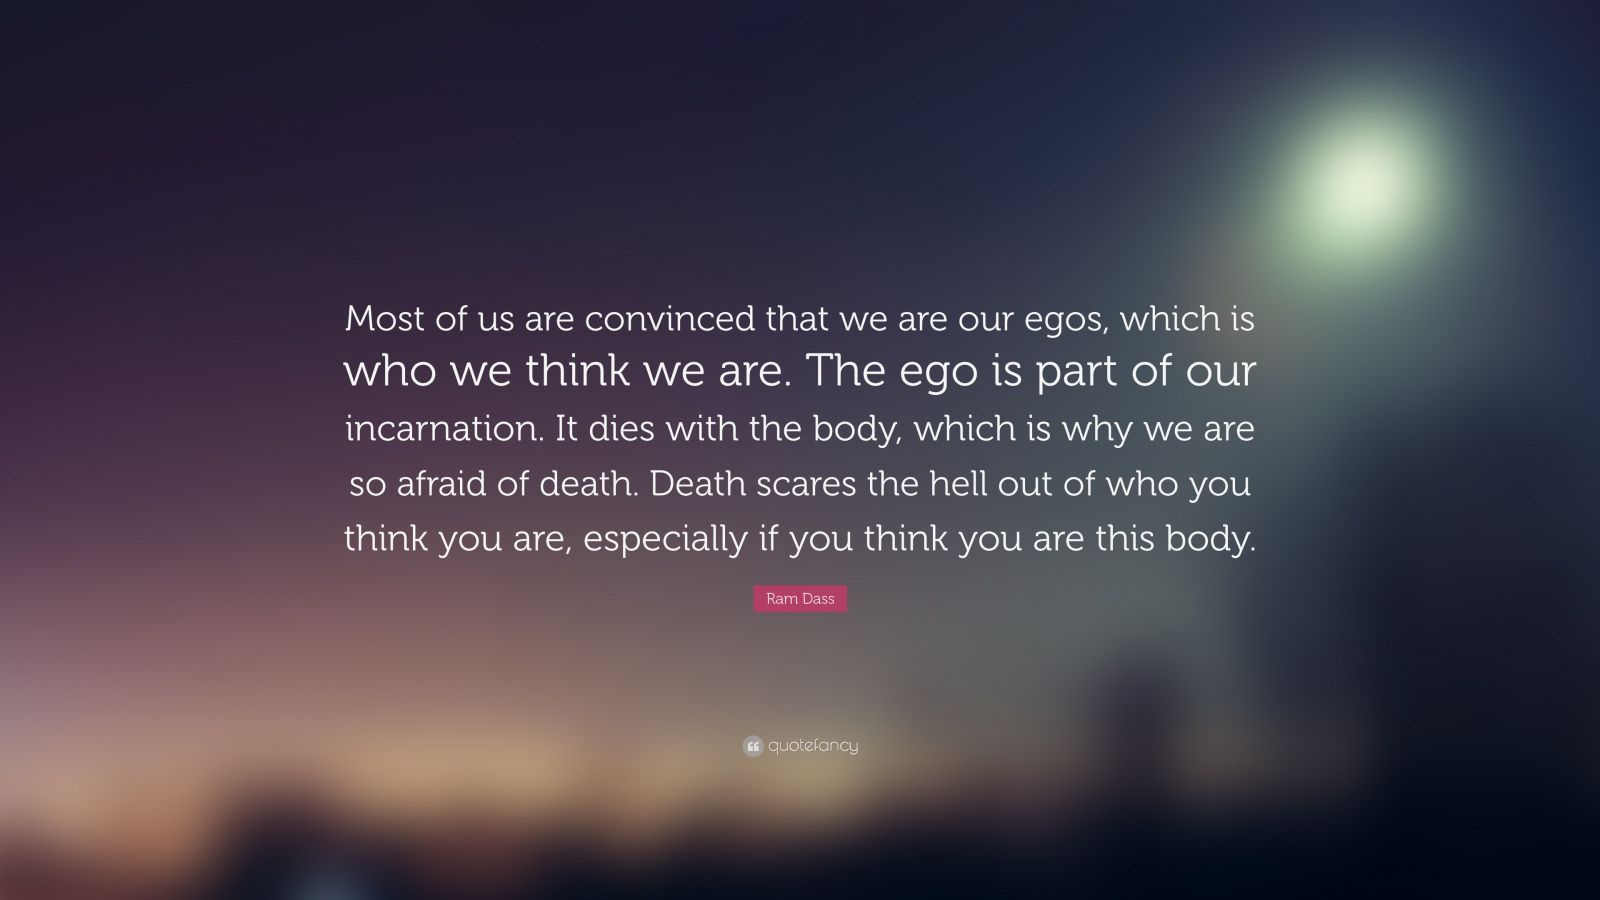 "Ram Dass Quote: ""Most of us are convinced that we are our egos, which is who we think we are. The ego is part of our incarnation. It dies with the body, which is why we are so afraid of death. Death scares the hell out of who you think you are, especially if you think you are this body."""